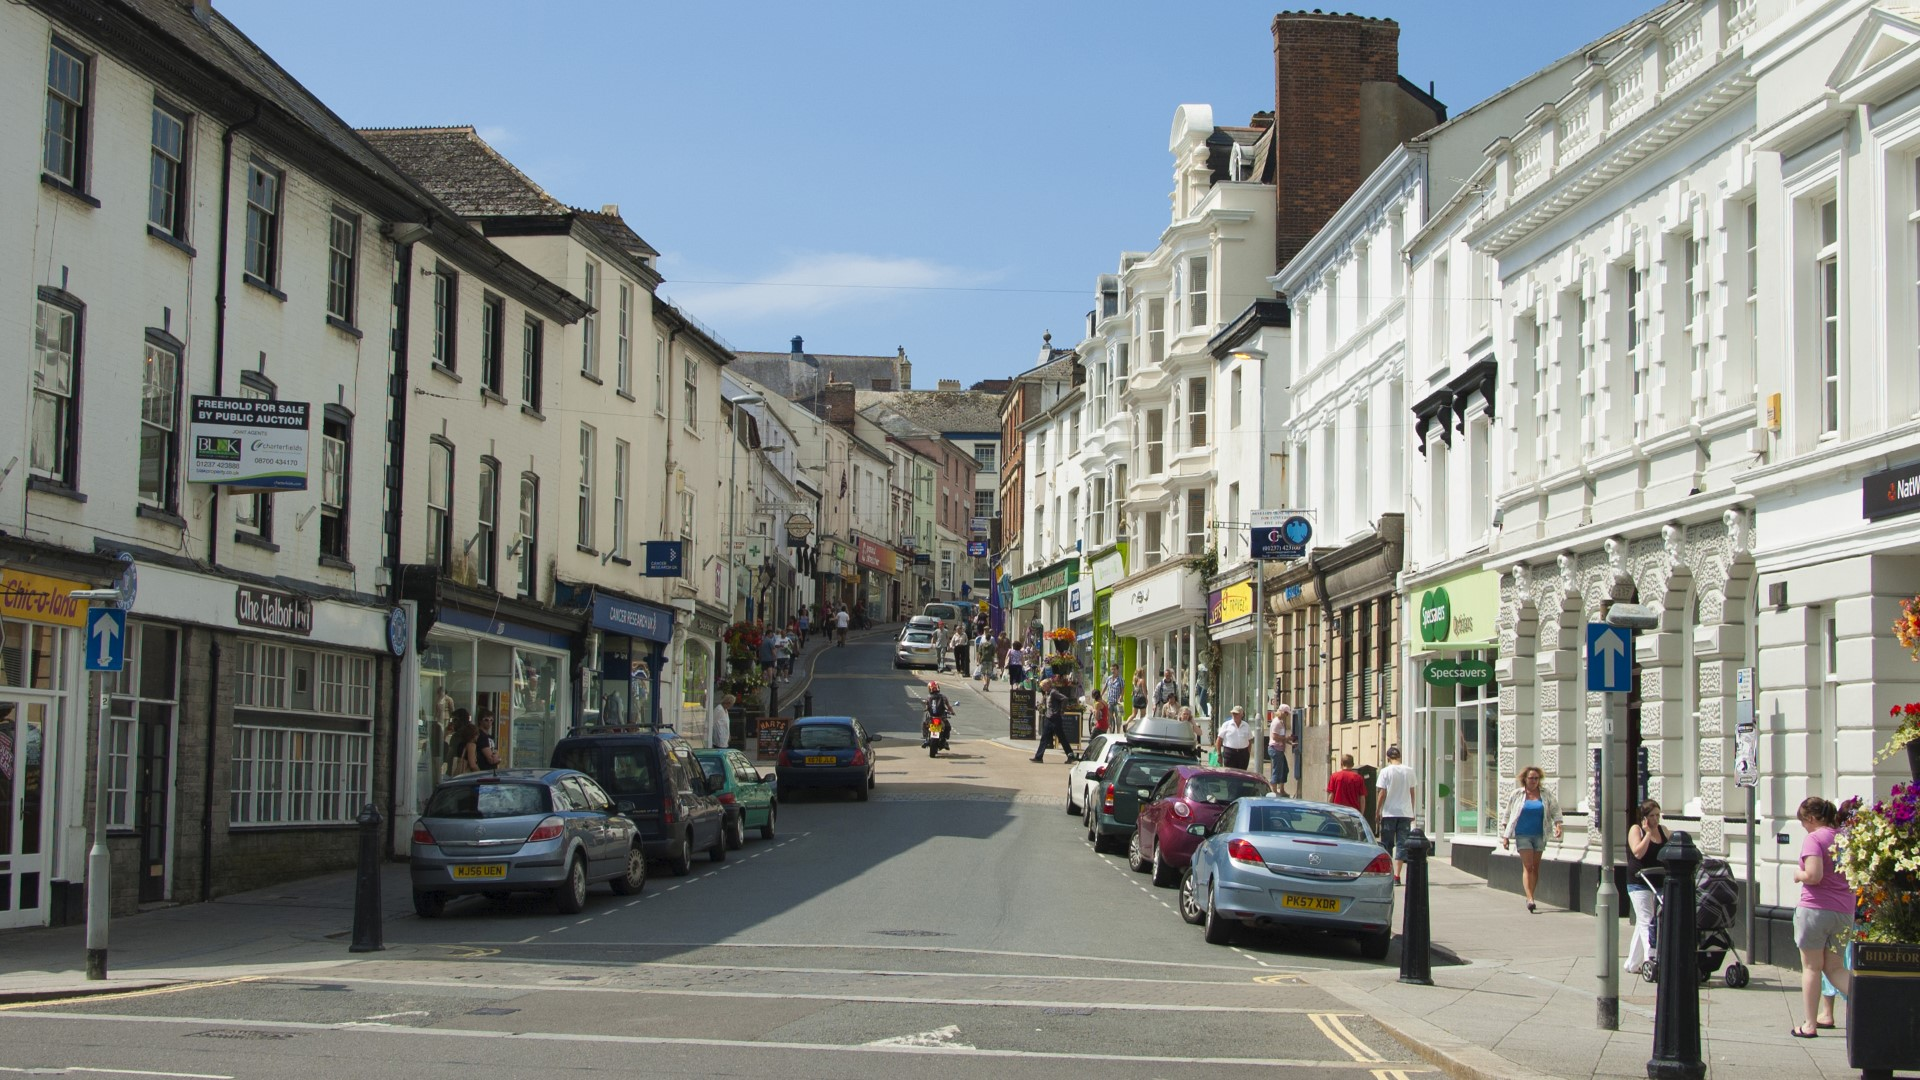 Bideford highstreet in North Devon